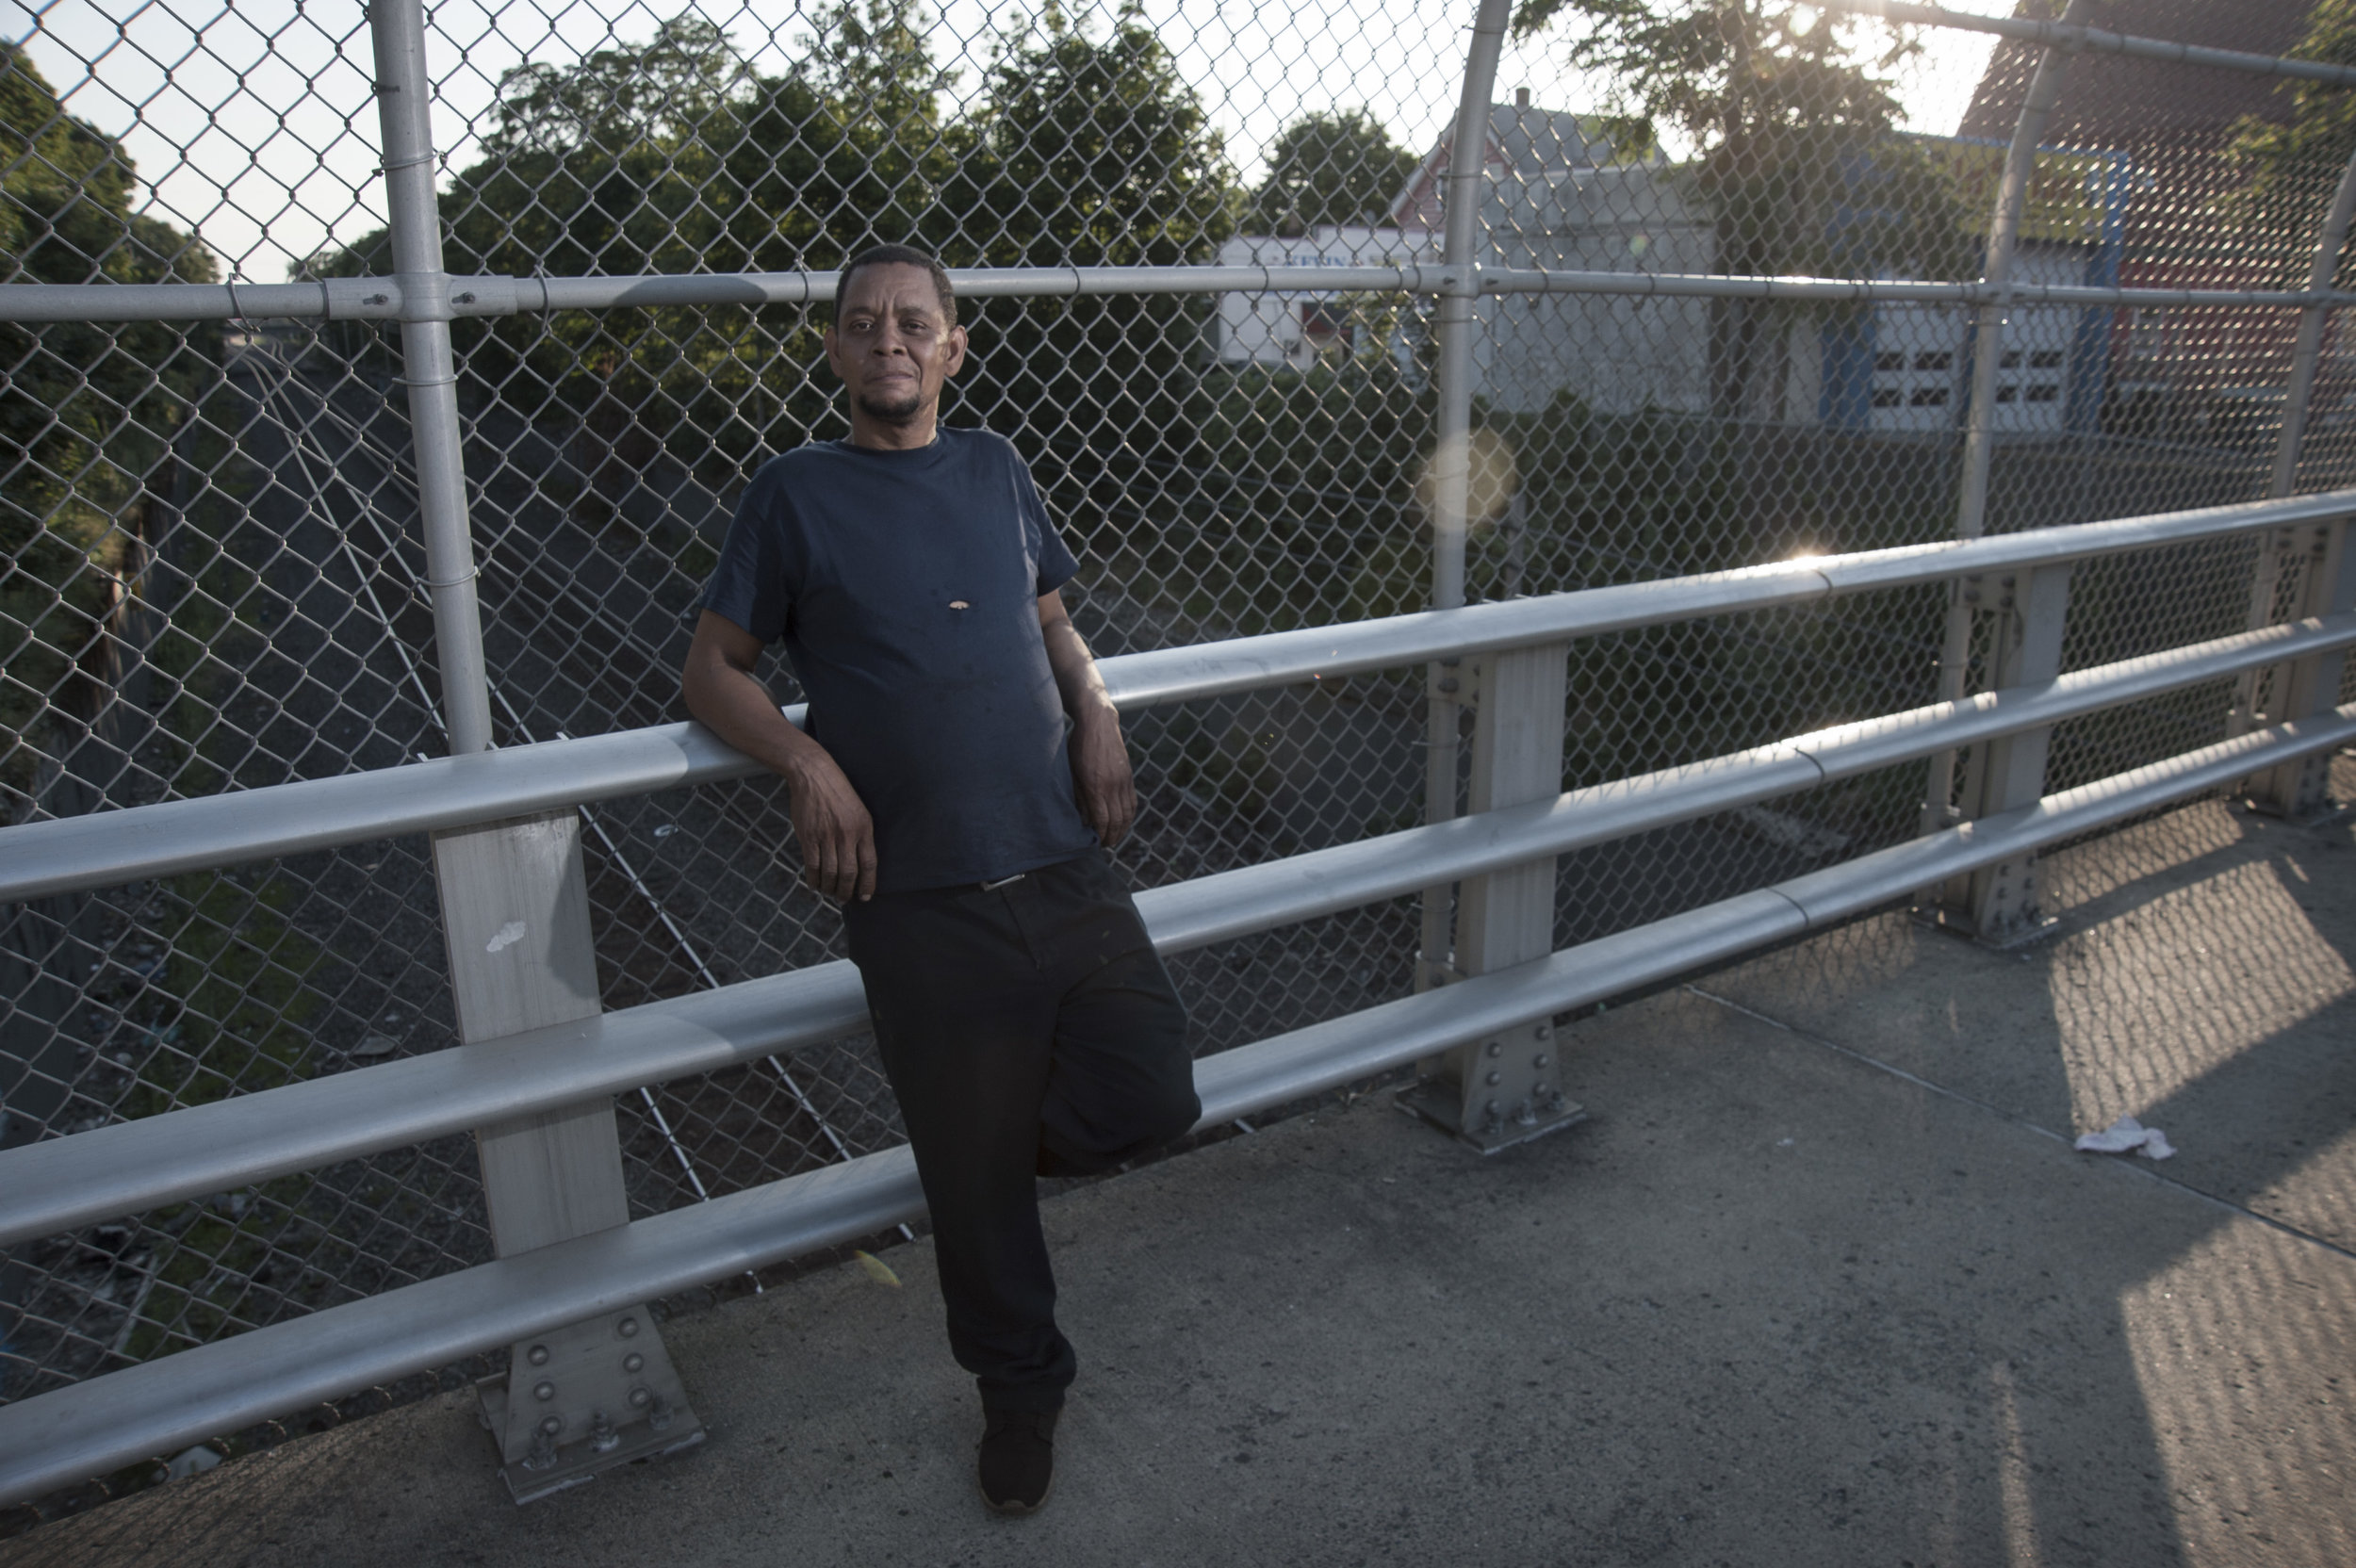 12 Lynn man on Bridge at sunset.jpg